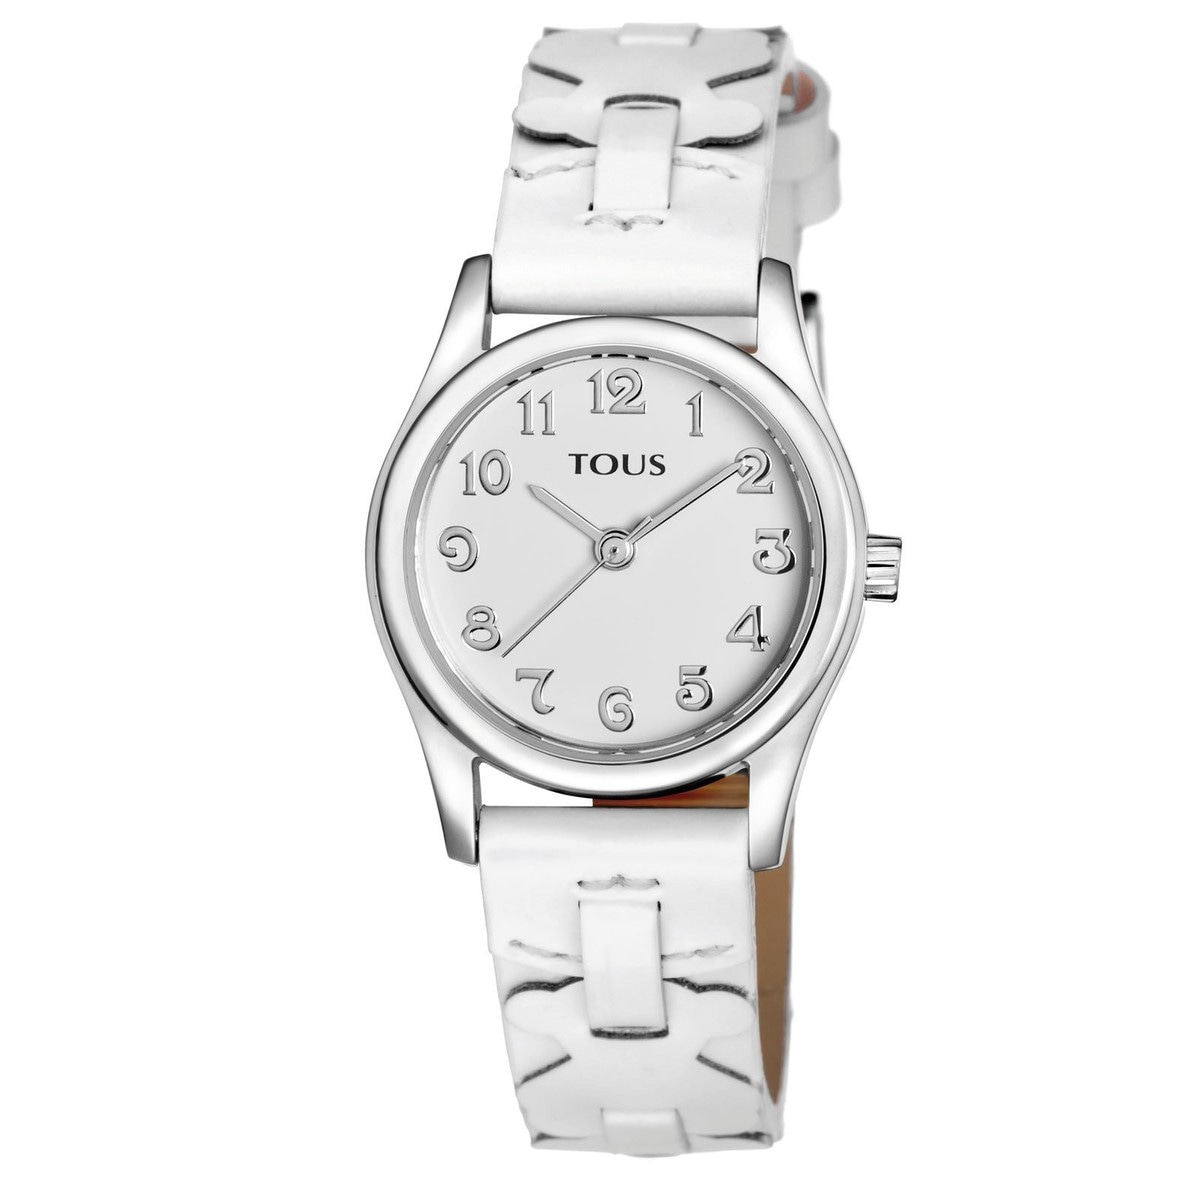 Steel Cruise Watch with white Leather strap